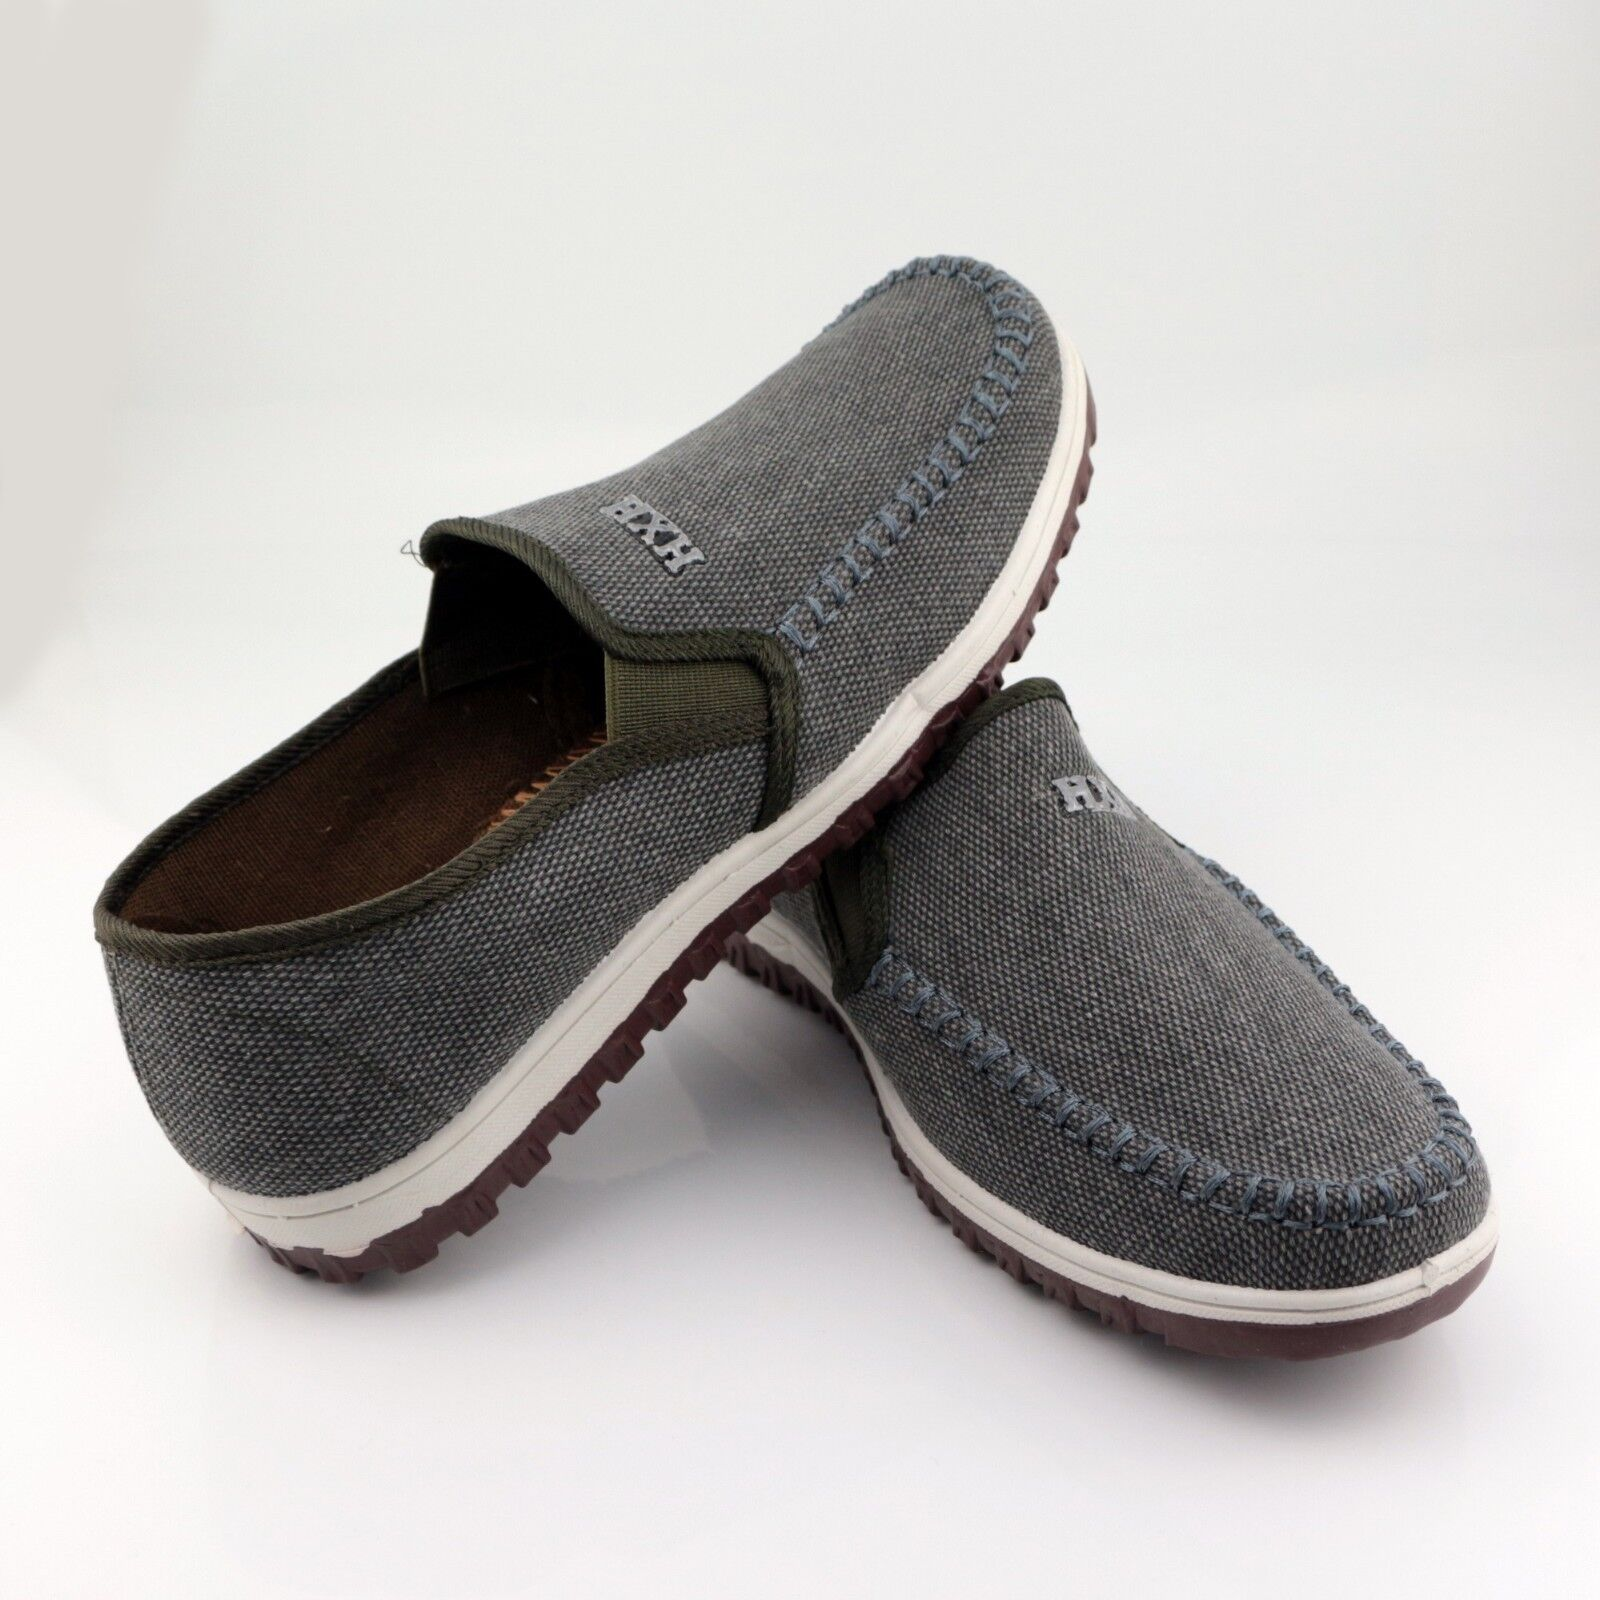 Men's Dark Gray Fashion Breathable Sports Sneakers Casual Shoes HXH-5